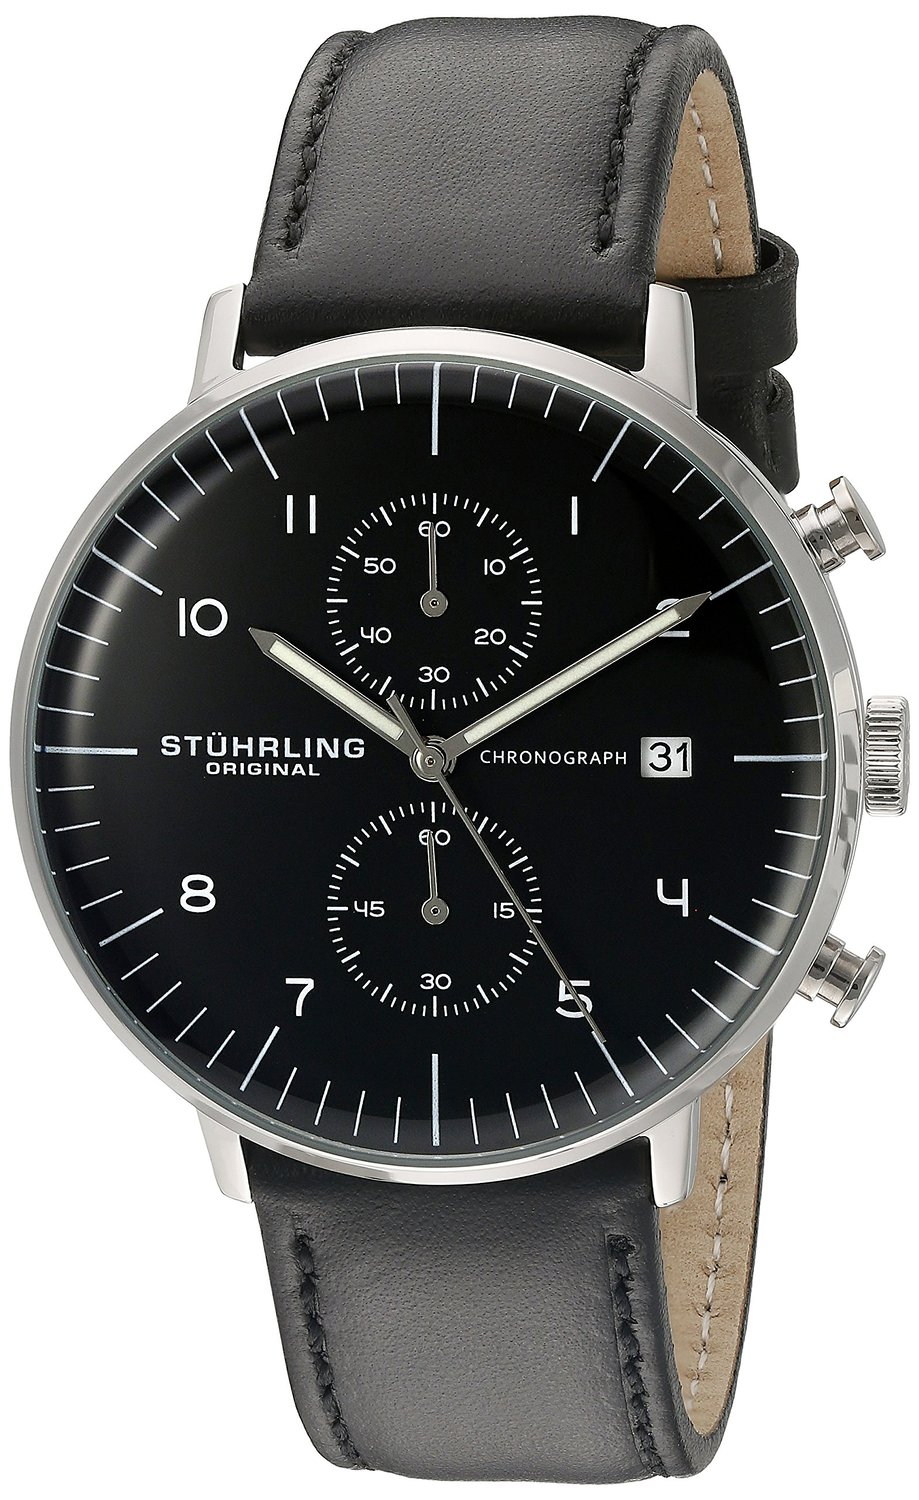 Stuhrling Original Men's 'Monaco' Quartz Chronograph Date Stainless Steel and Leather Dress Watch, 803.01,Black